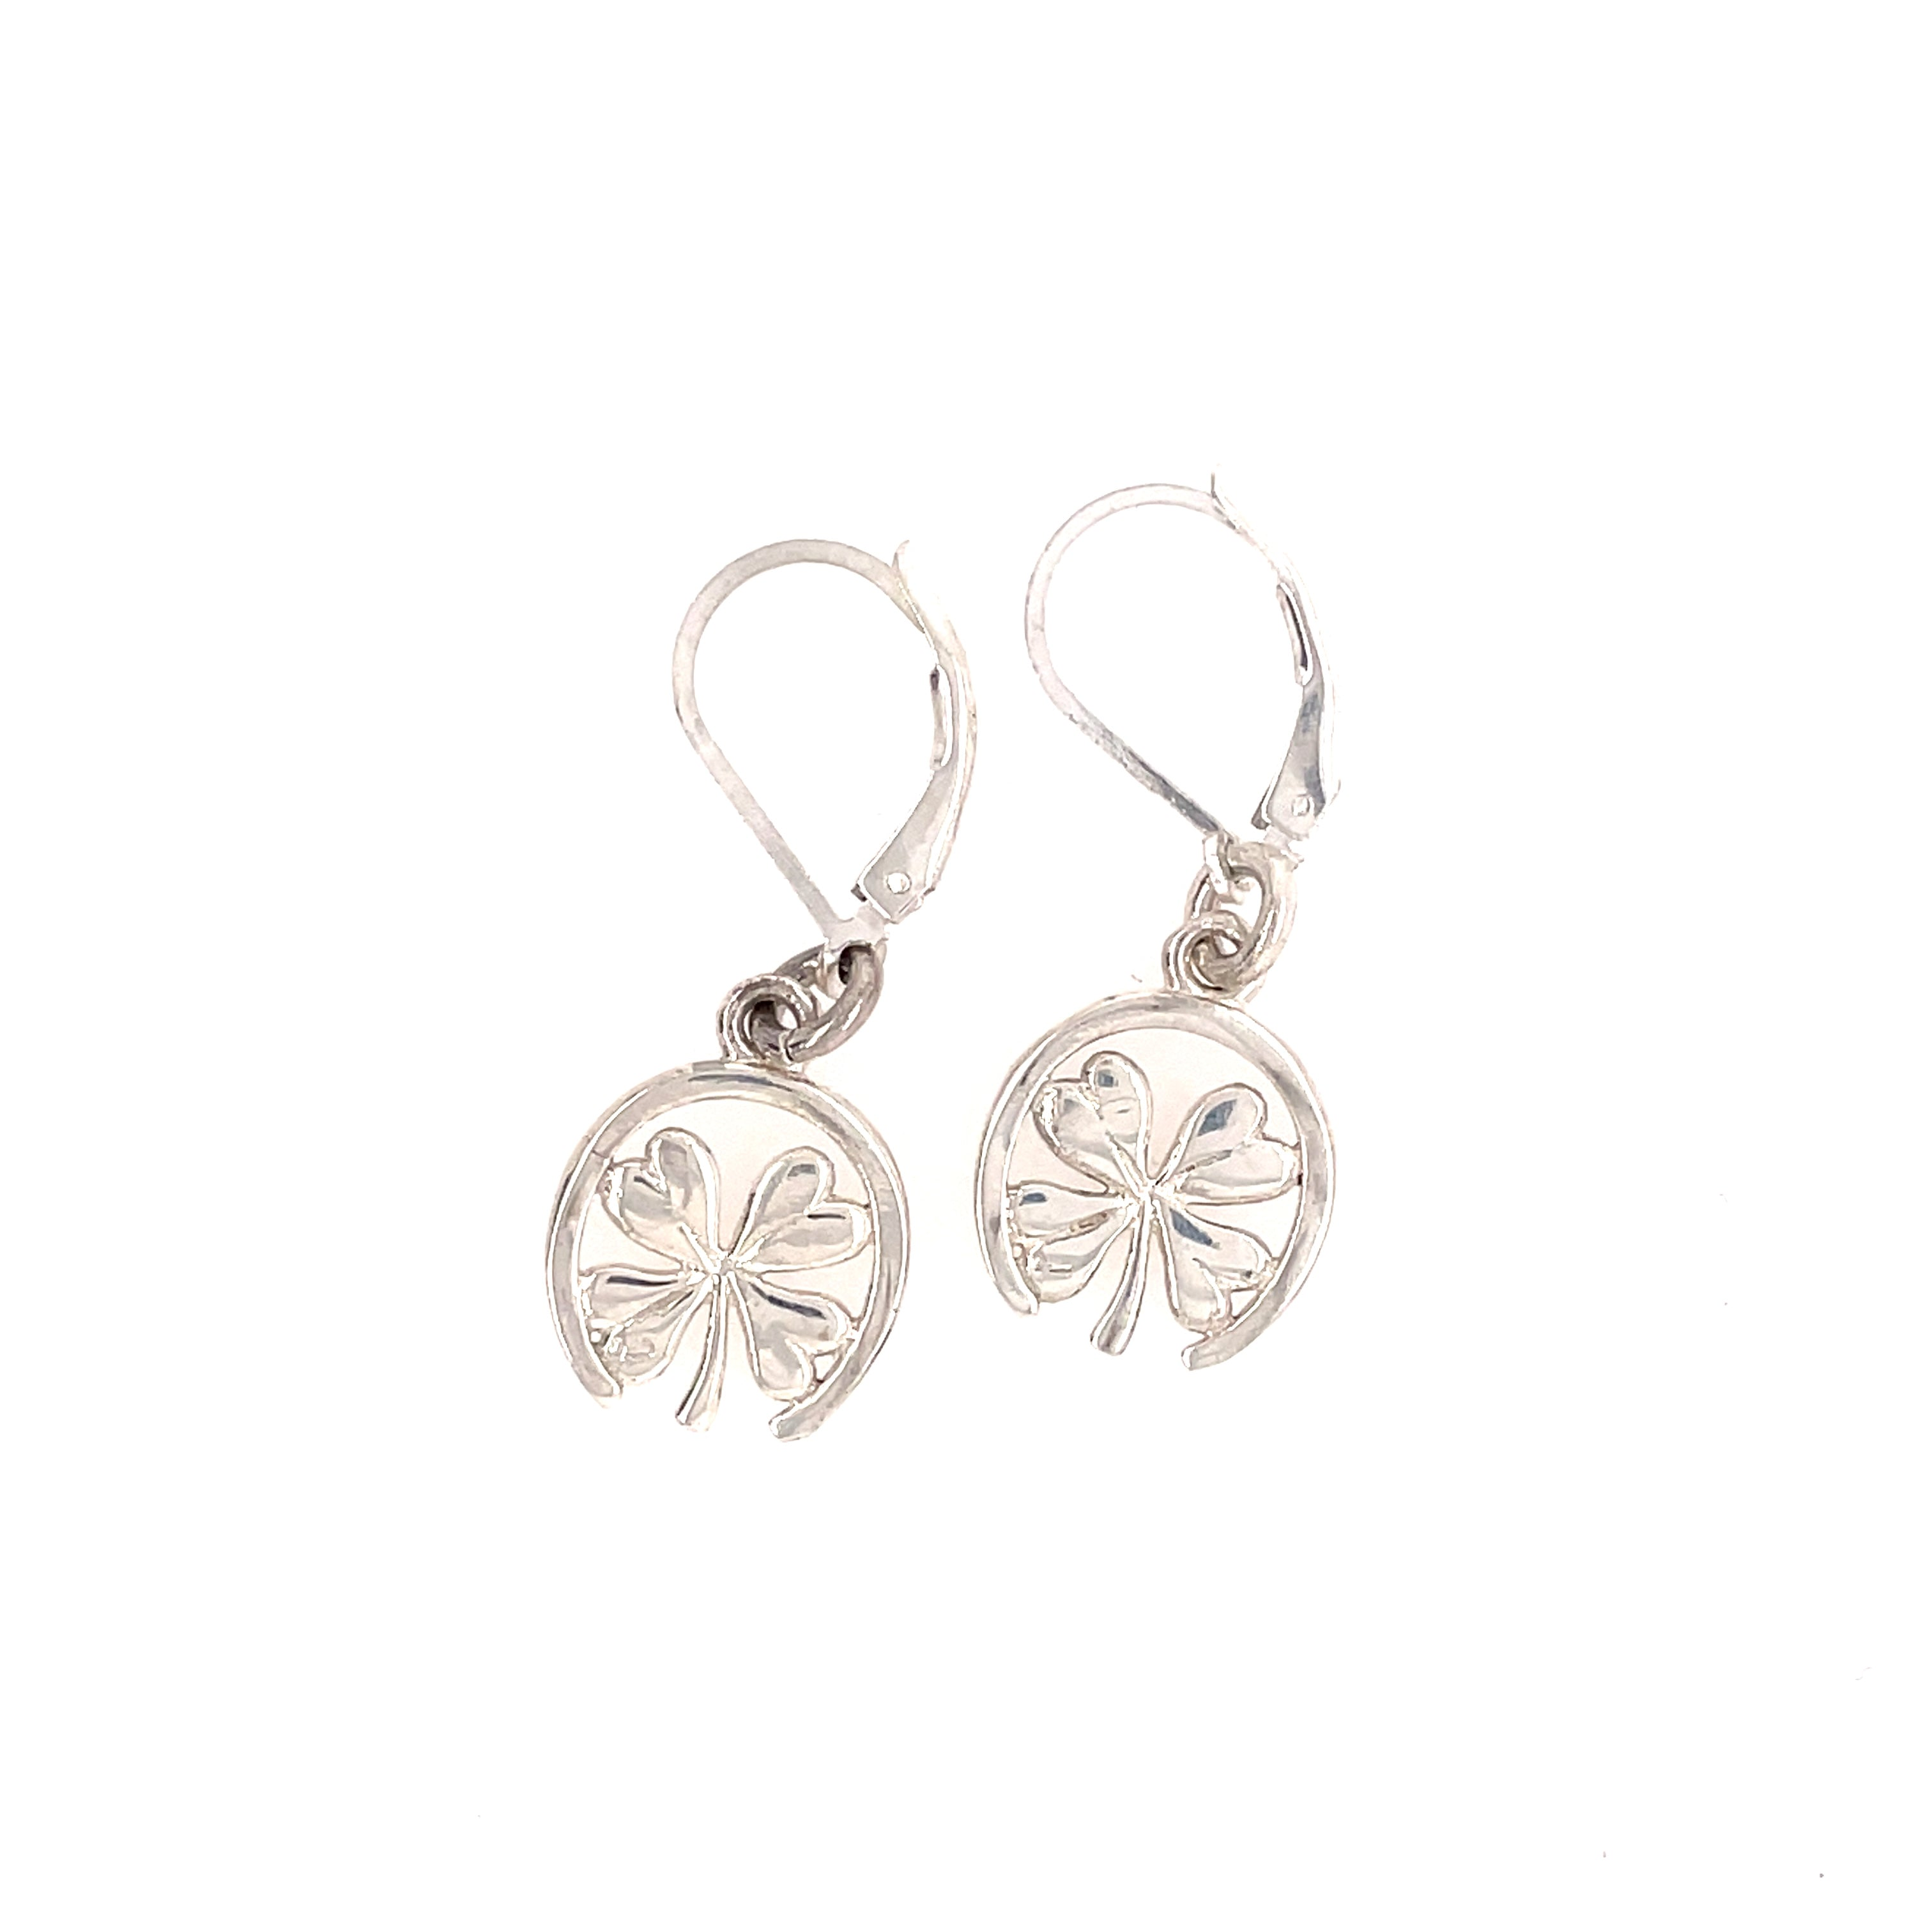 Hanging horseshoe and clover sterling earrings